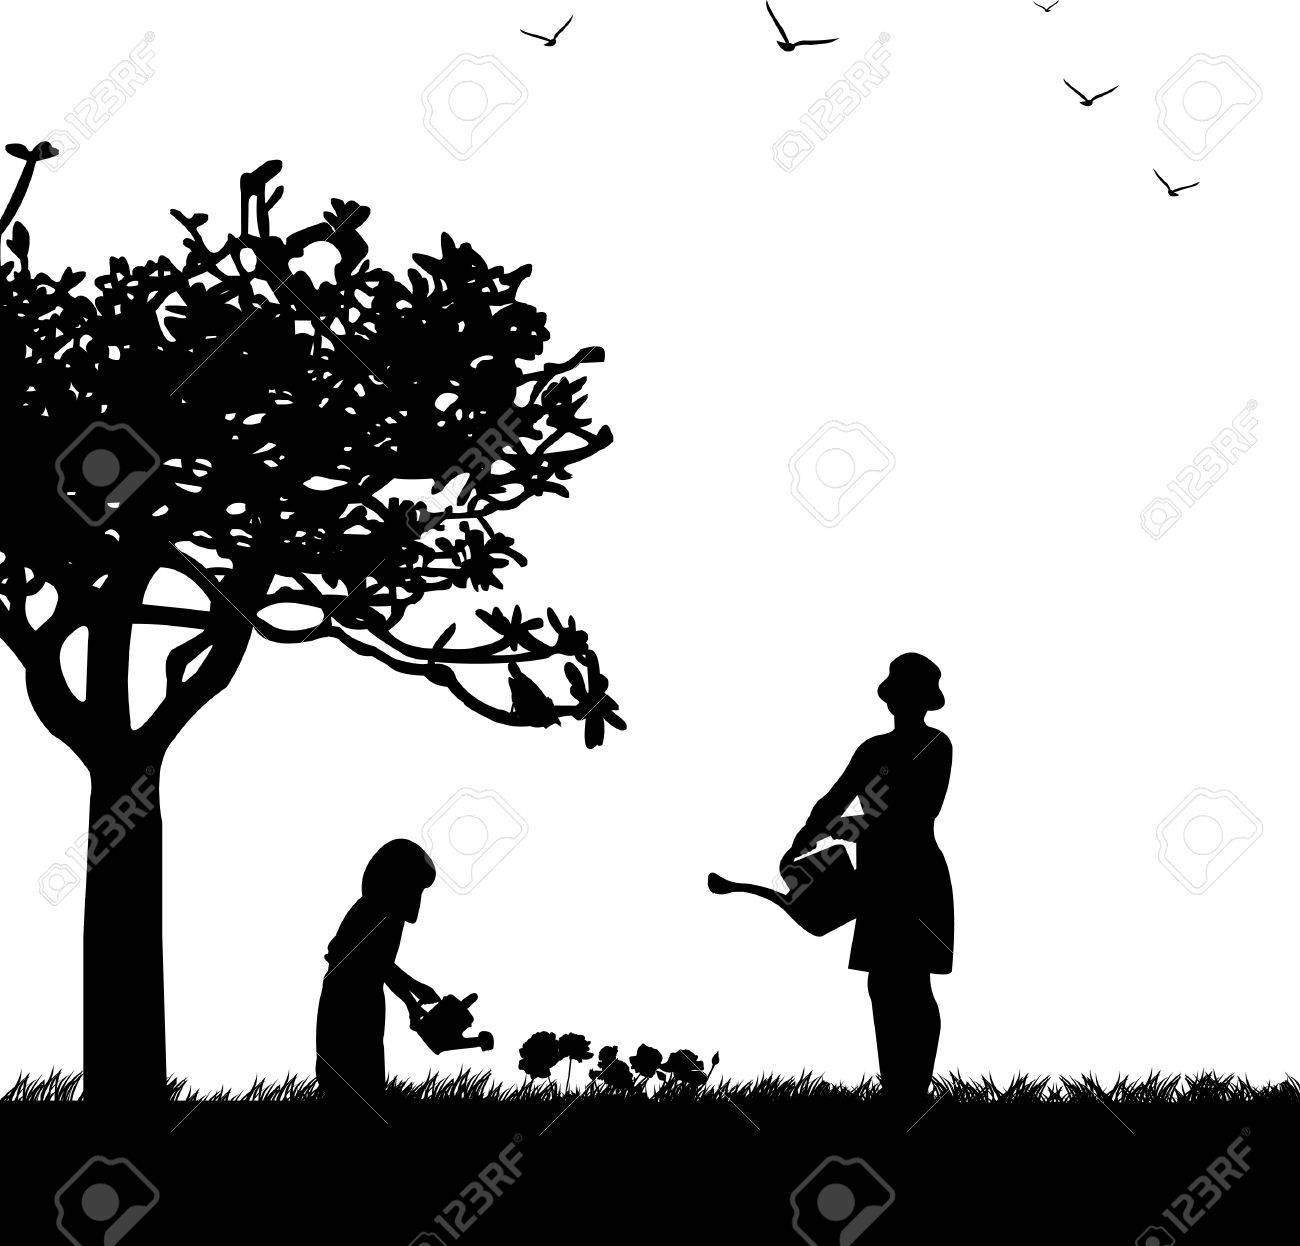 Mother s day celebration between mother and daughter in park, beautiful concept wallpaper for happy mother s day celebration, one in the series of similar images silhouette Stock Vector - 13270989